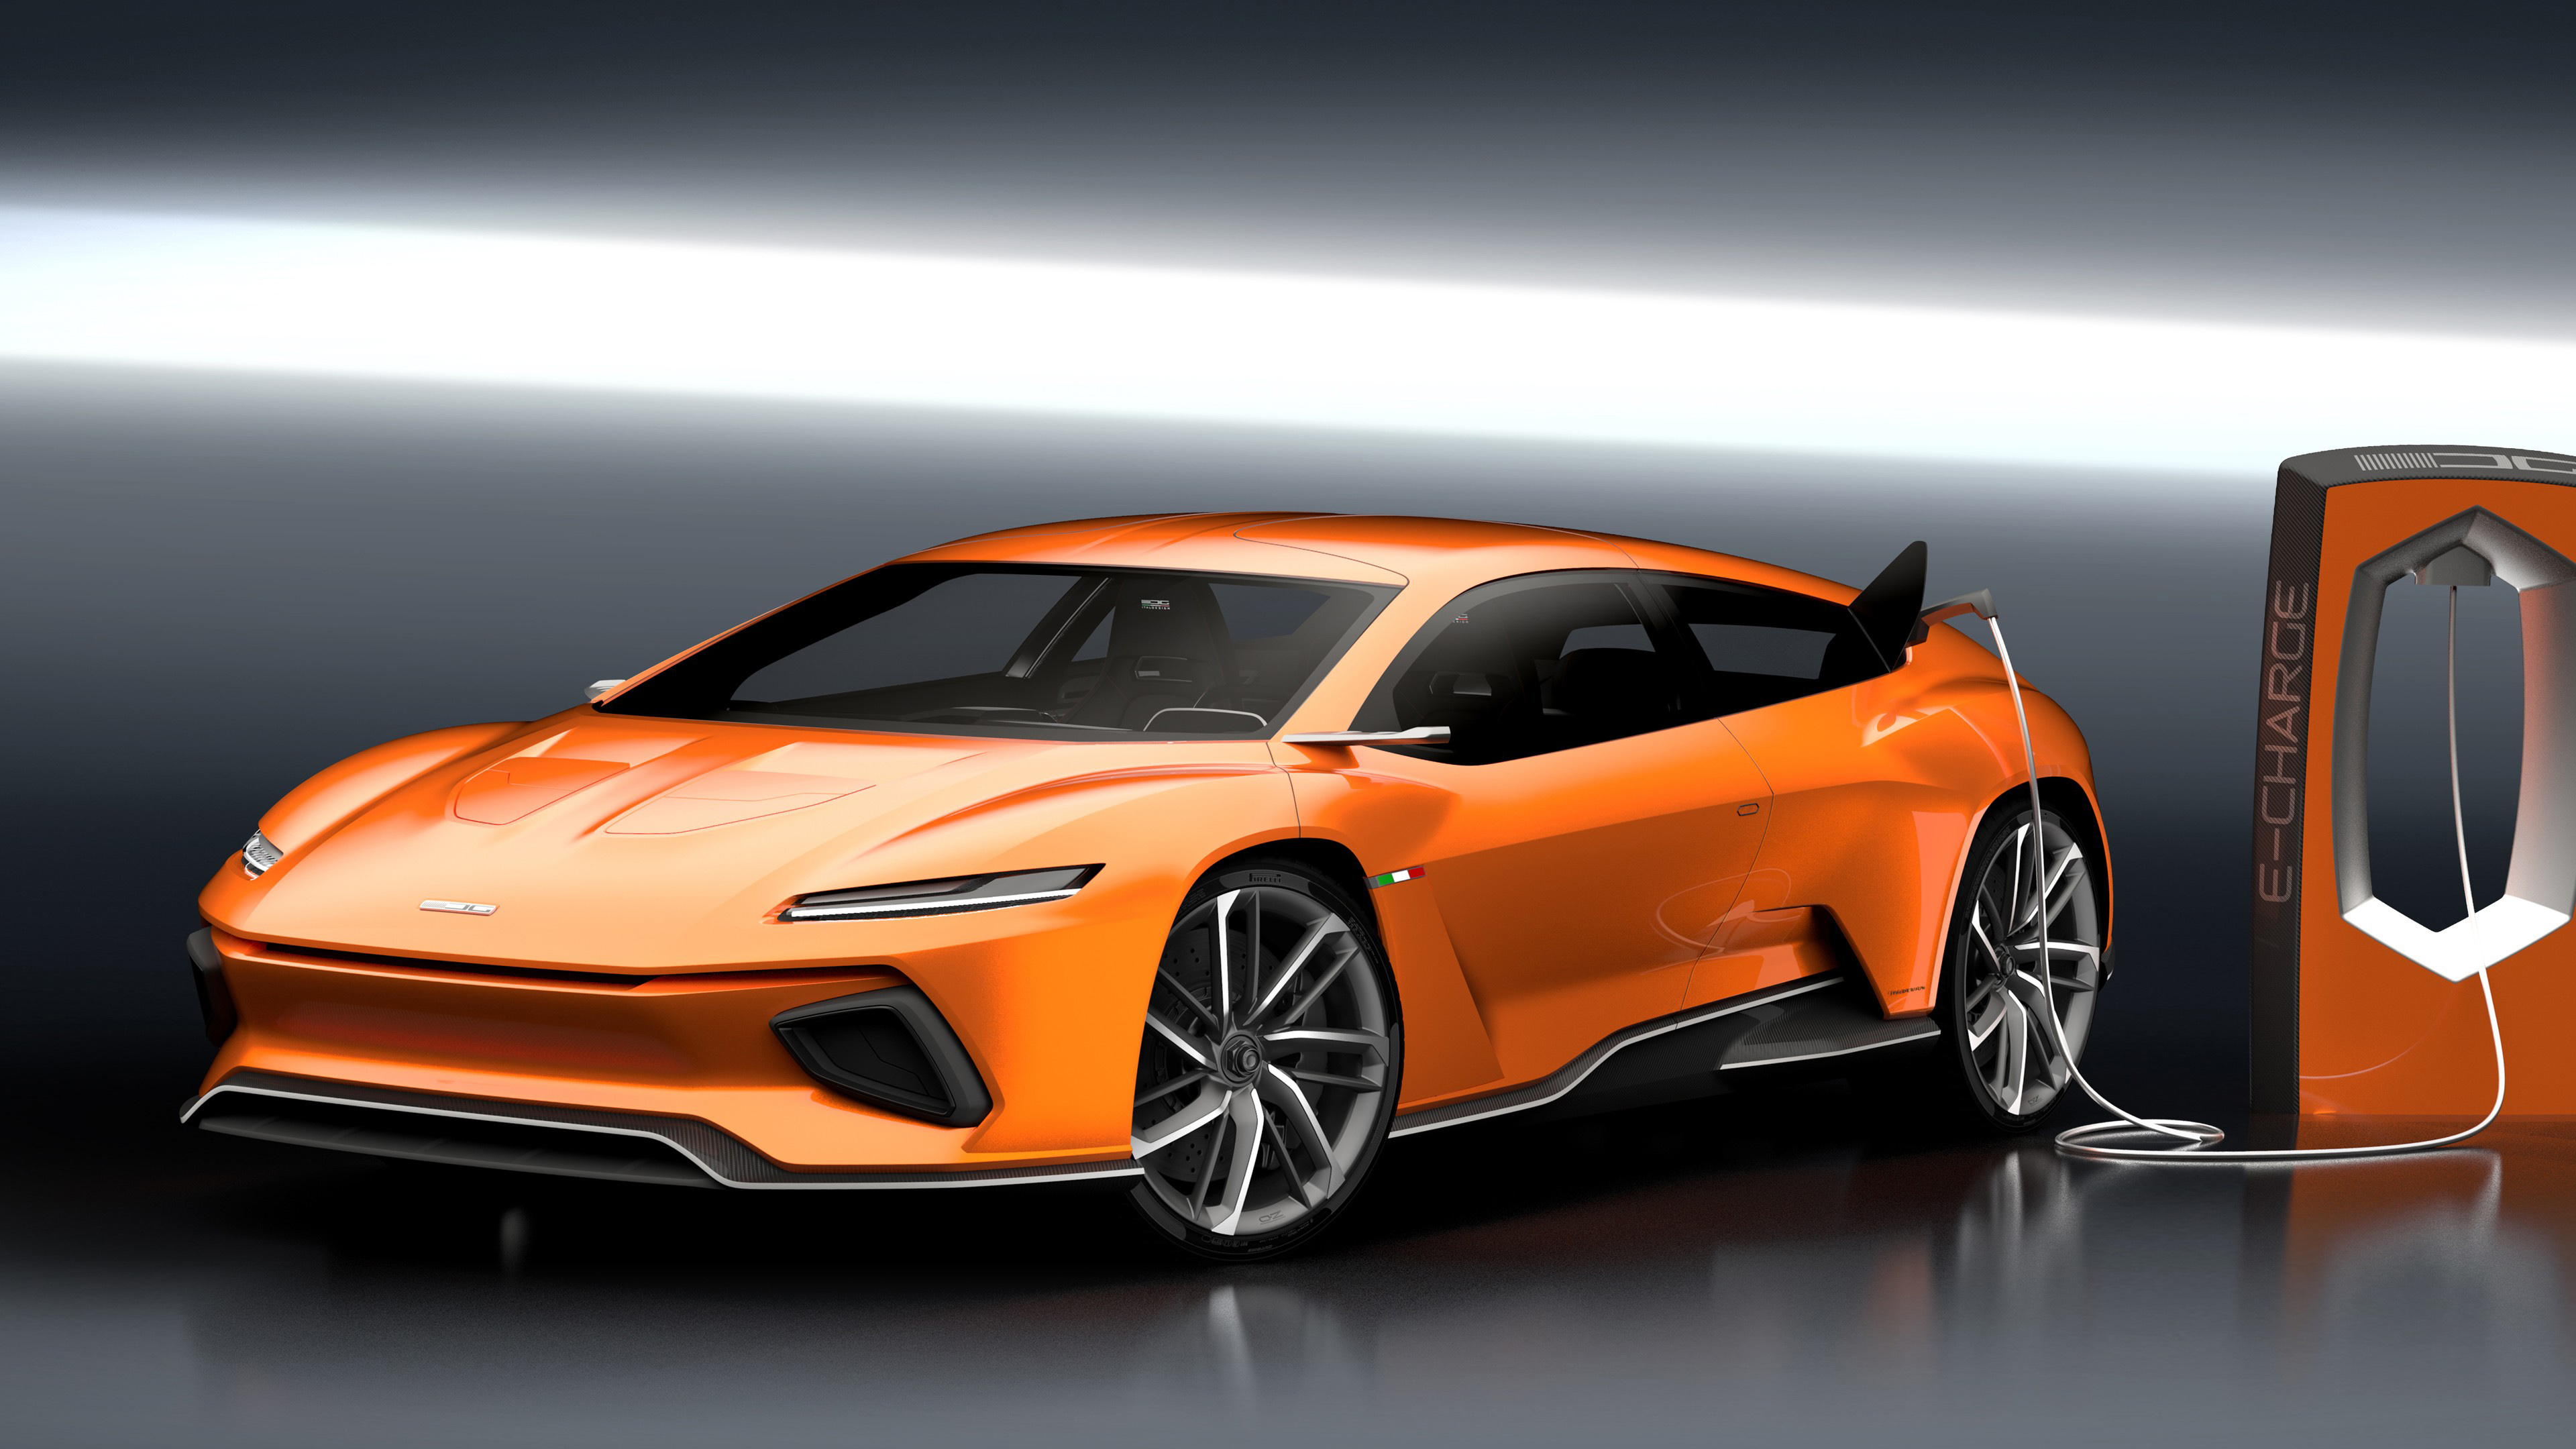 Italdesign GT Zero Electric Car Wallpaper